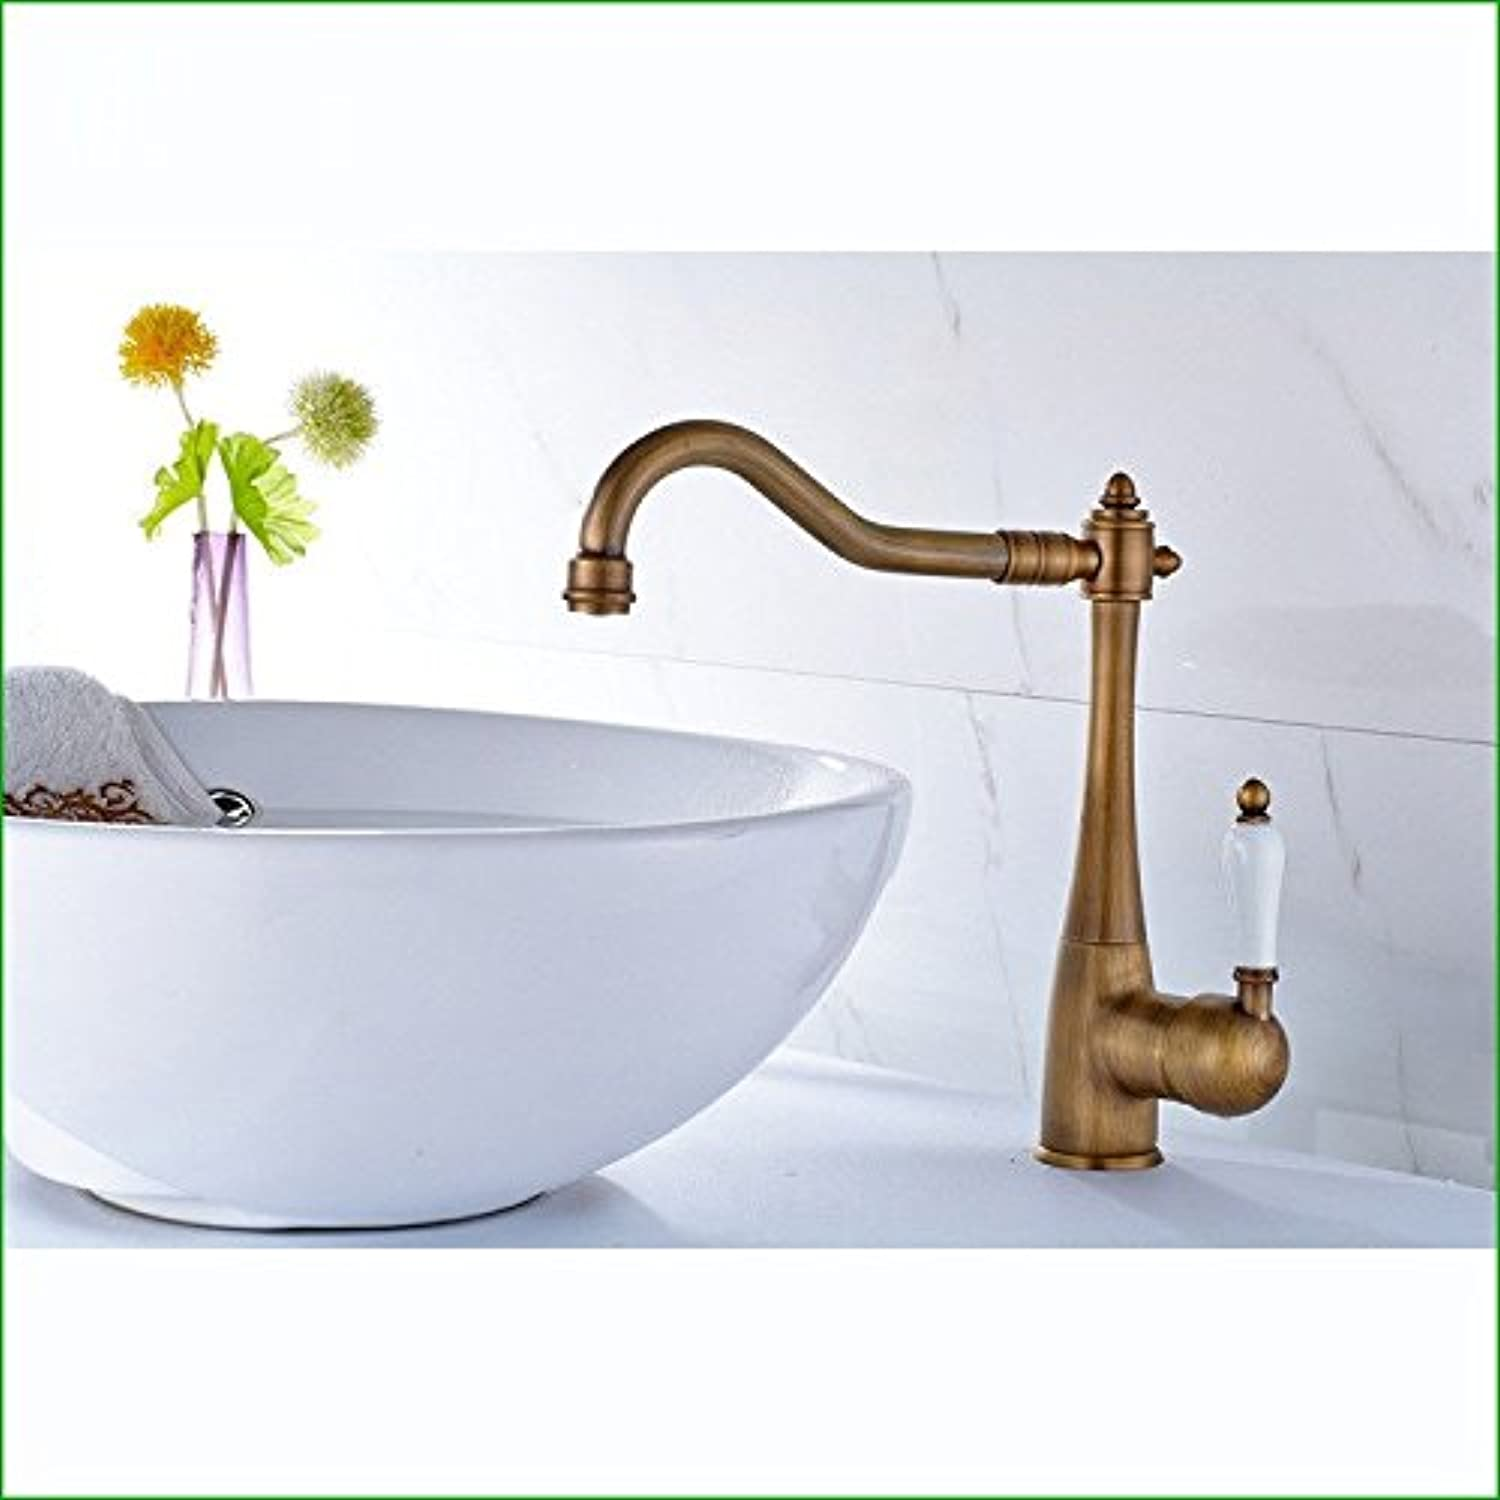 Bijjaladeva Antique Kitchen Sink Mixer Tap The Antique Copper Single Handle Single Hole and Cold Water Faucet hot and Cold Basin Antique Table Basin Kitchen Faucet